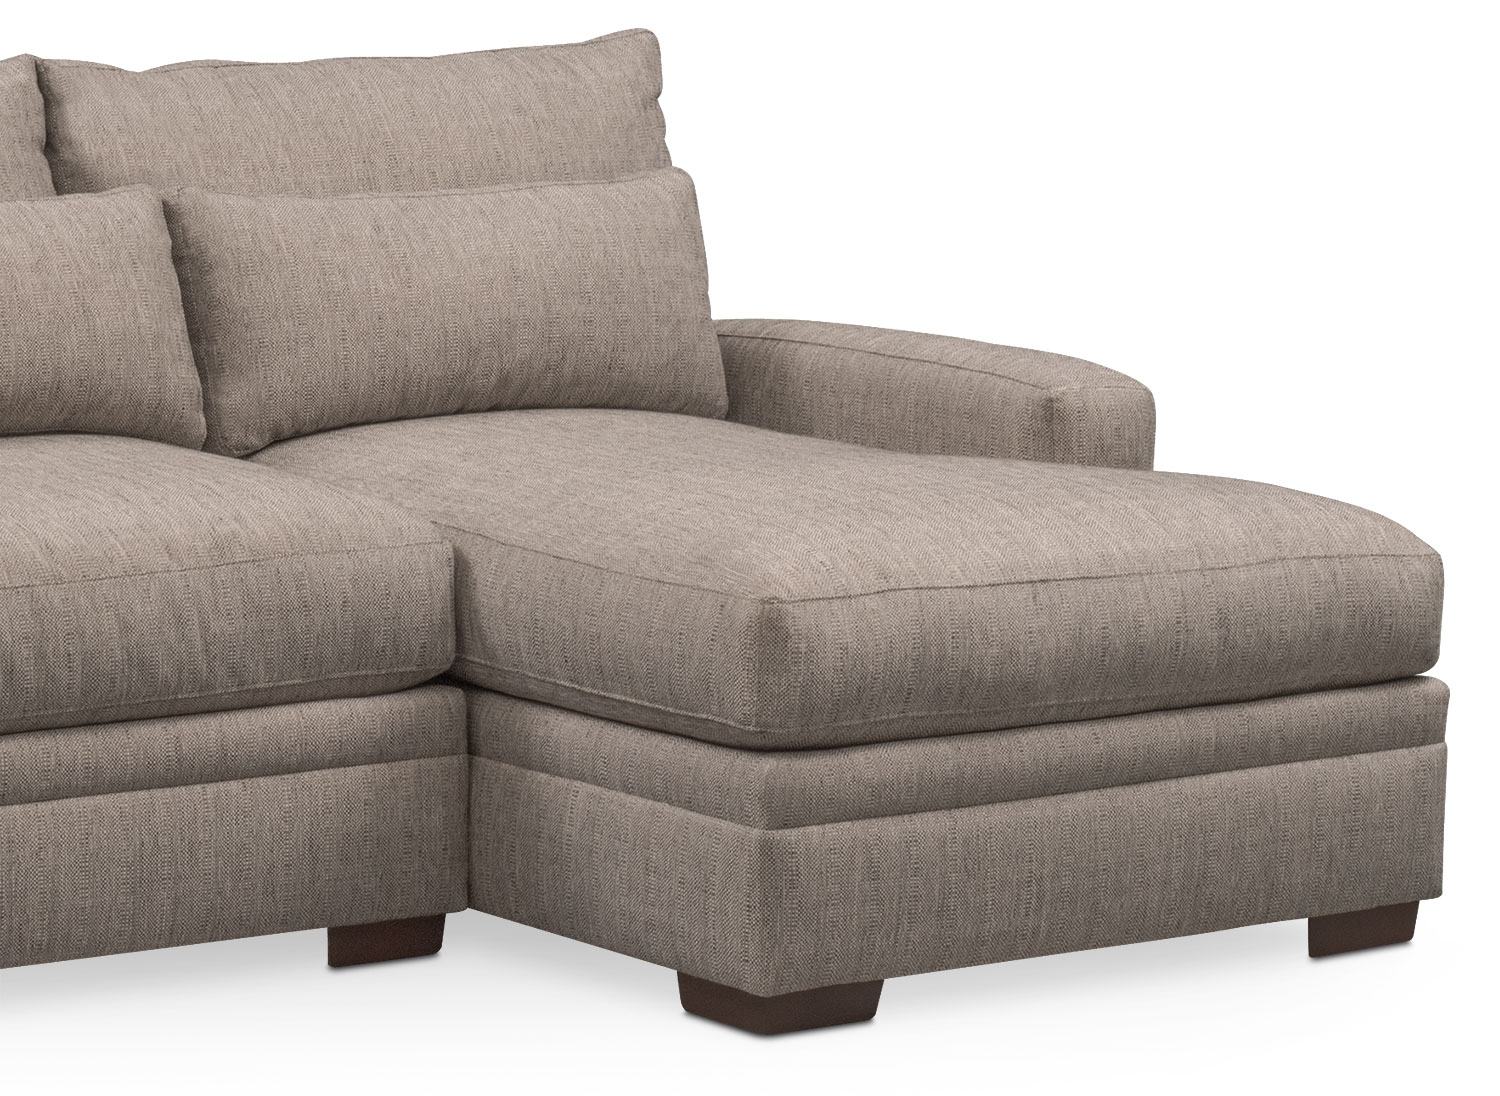 Vcf Sofa Chaise | Baci Living Room for Mcdade Graphite 2 Piece Sectionals With Laf Chaise (Image 25 of 30)